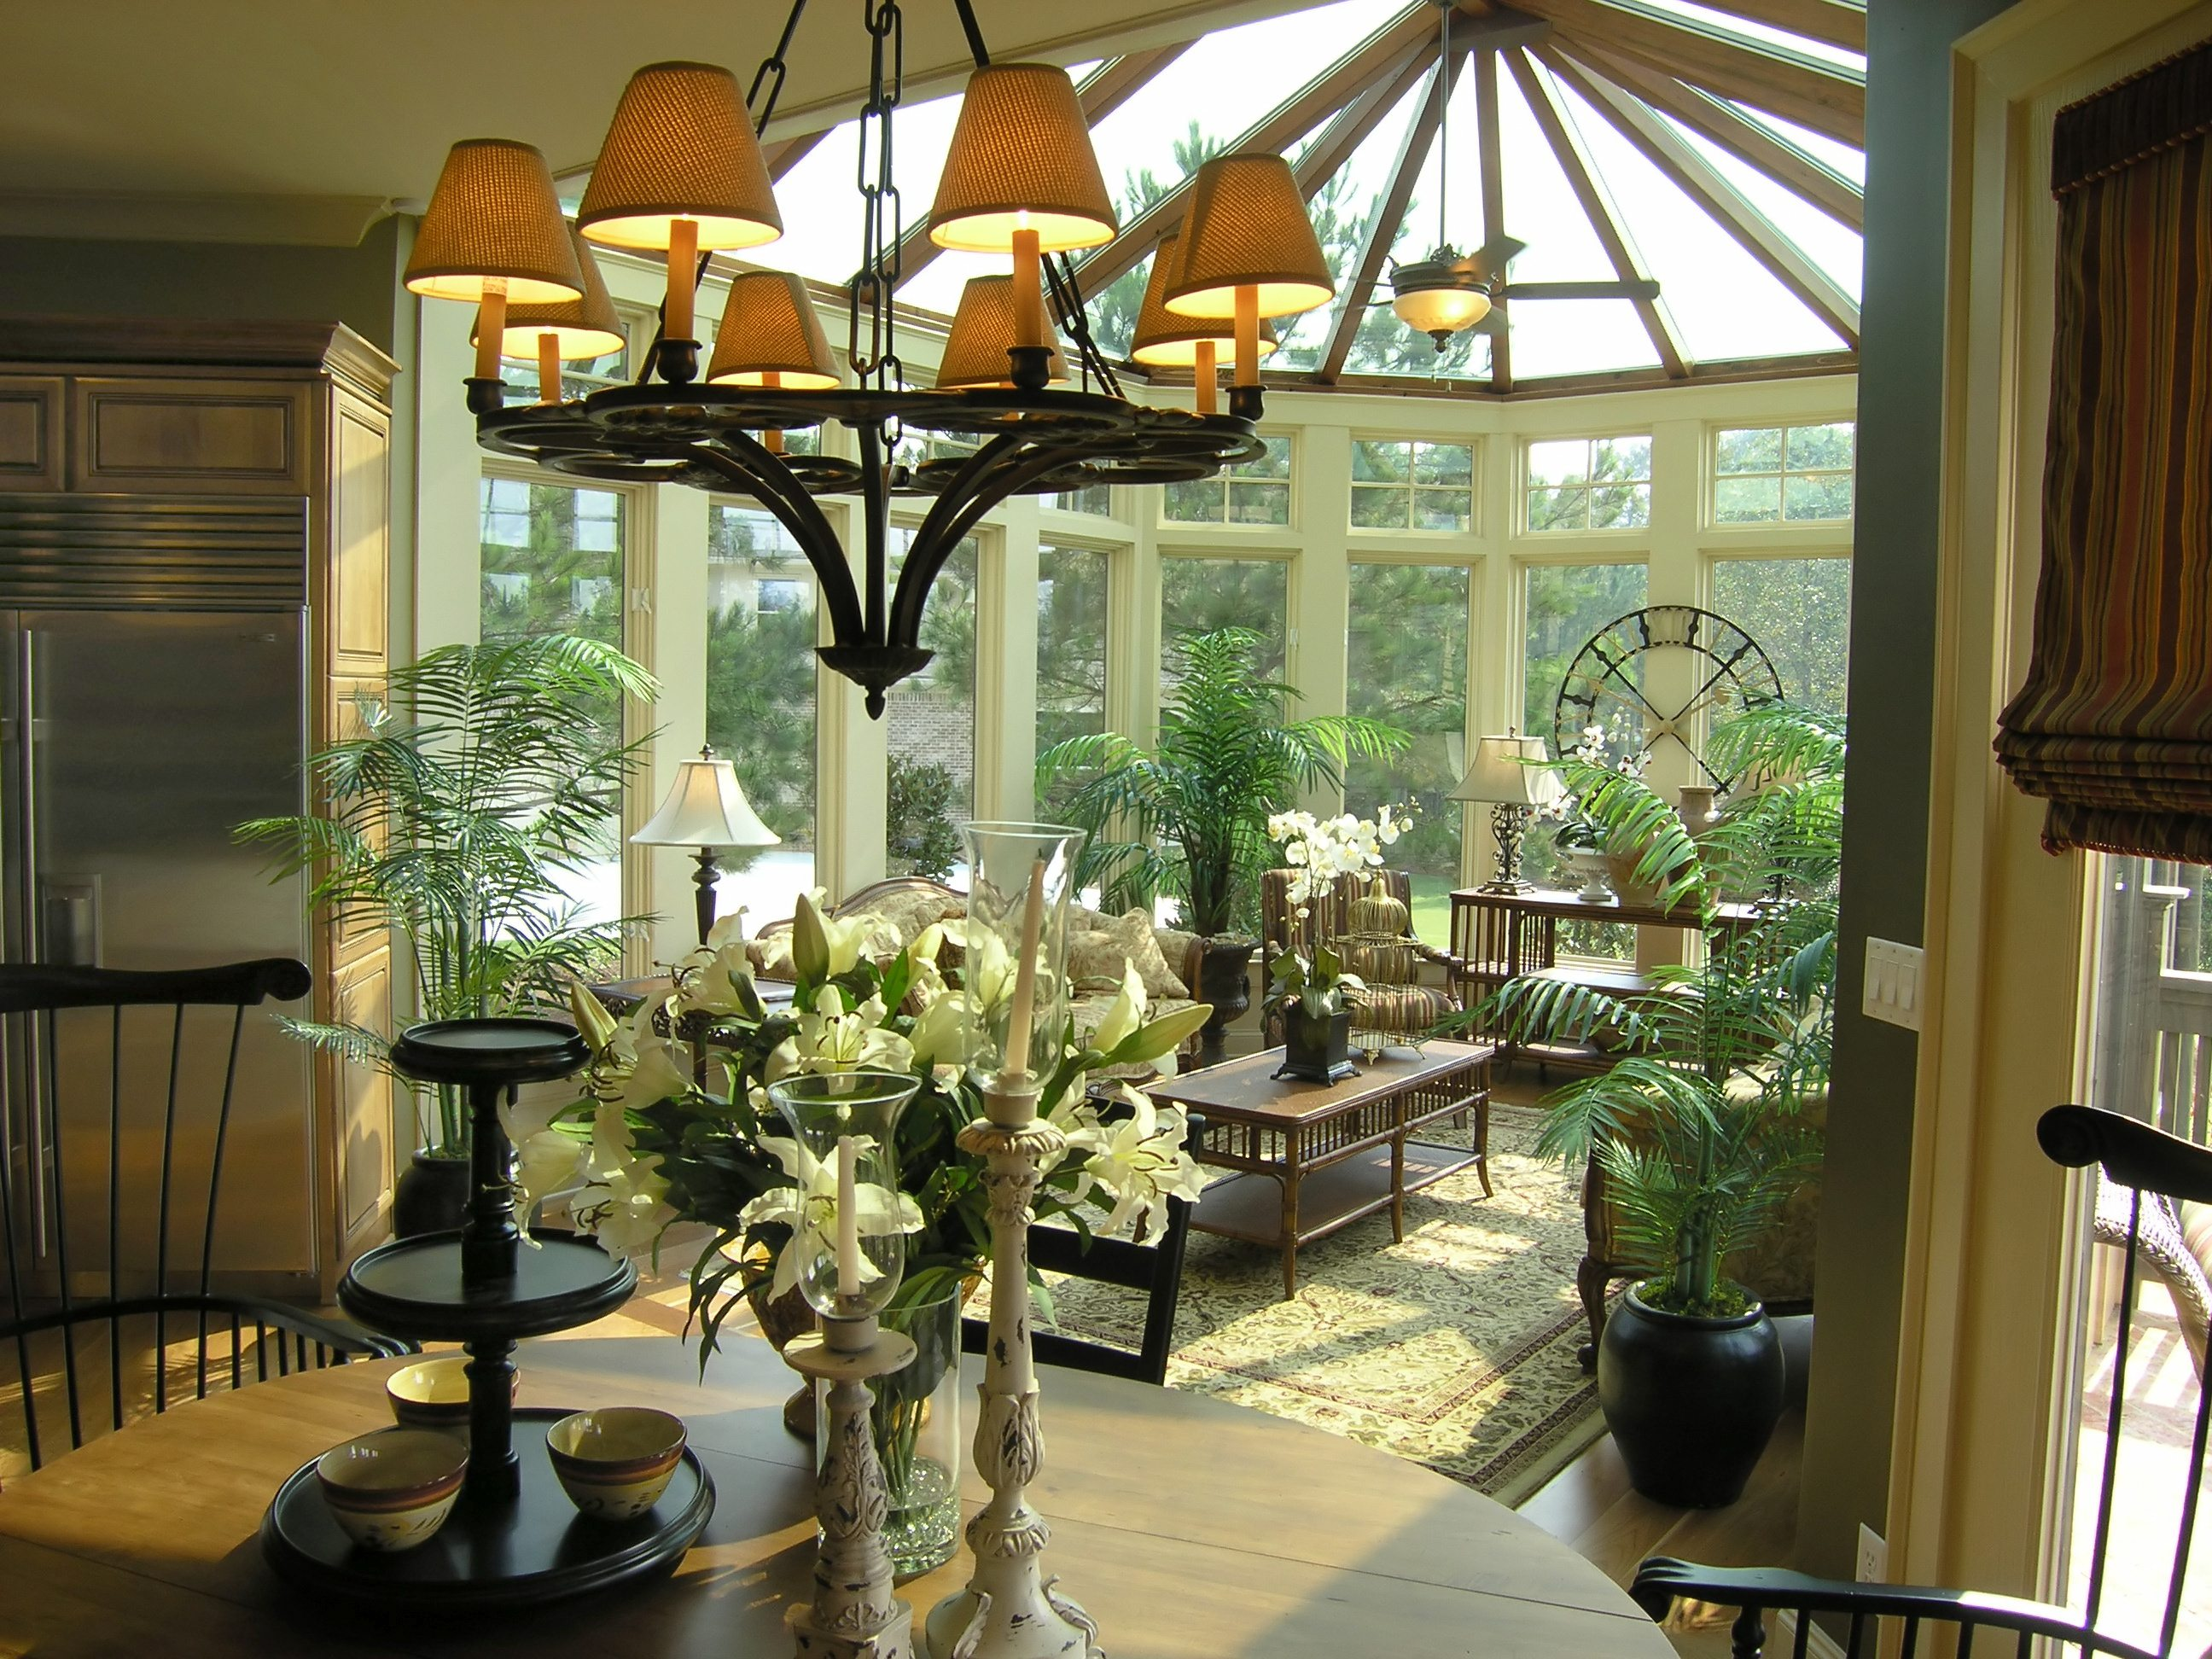 Fixtures in a Home - What Comes With the House - Charlotte Homes for Sale